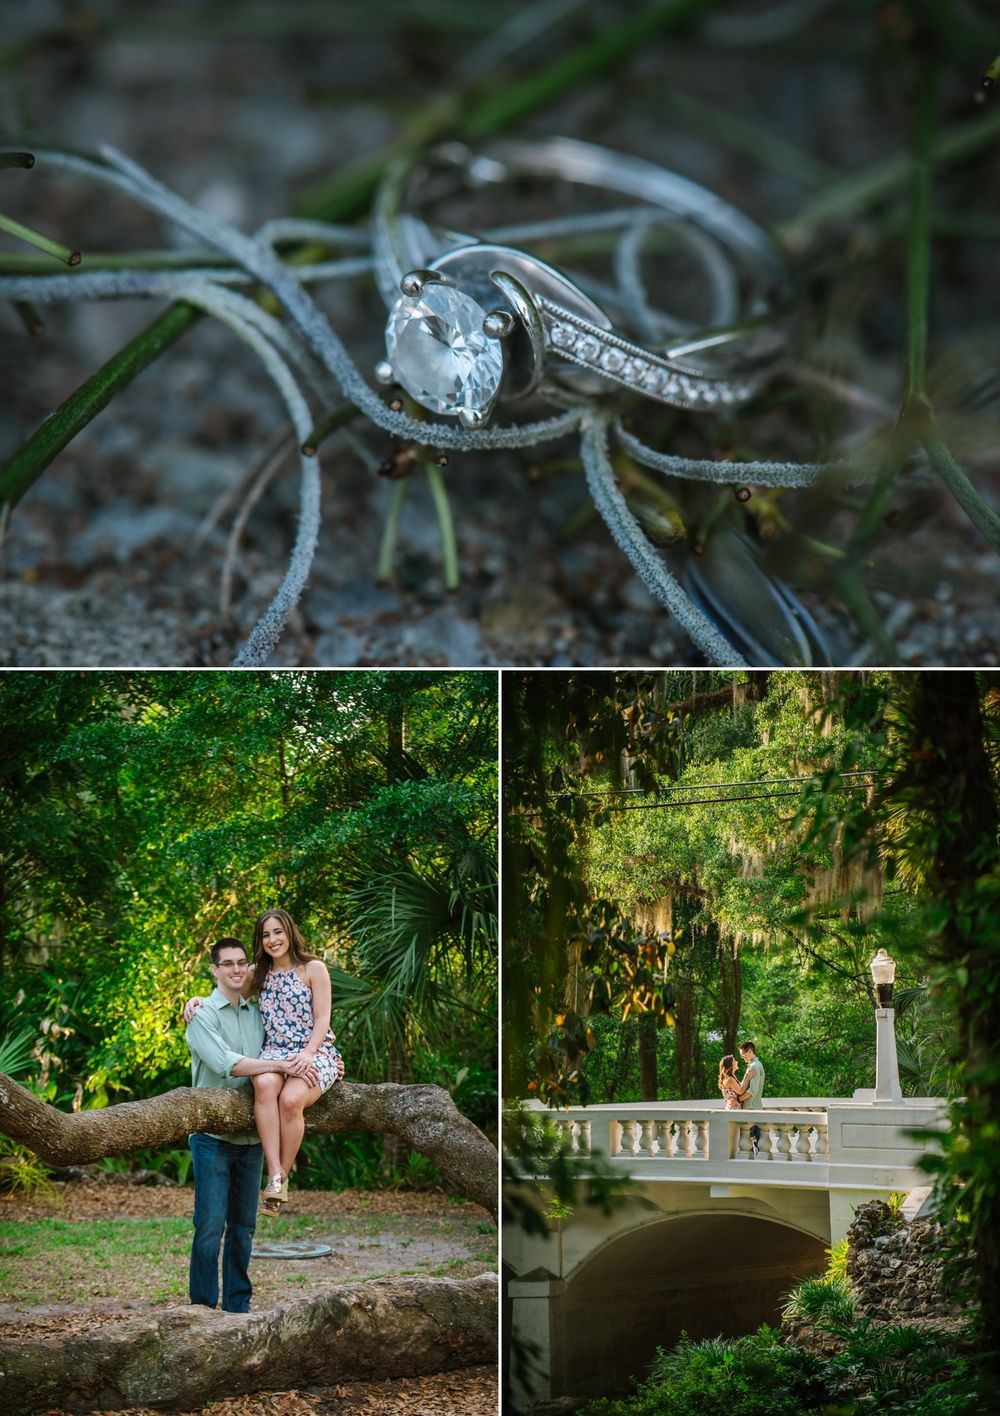 ashlee-hamon-photography-orlando-lake-eola-engagement-photography_0003.jpg